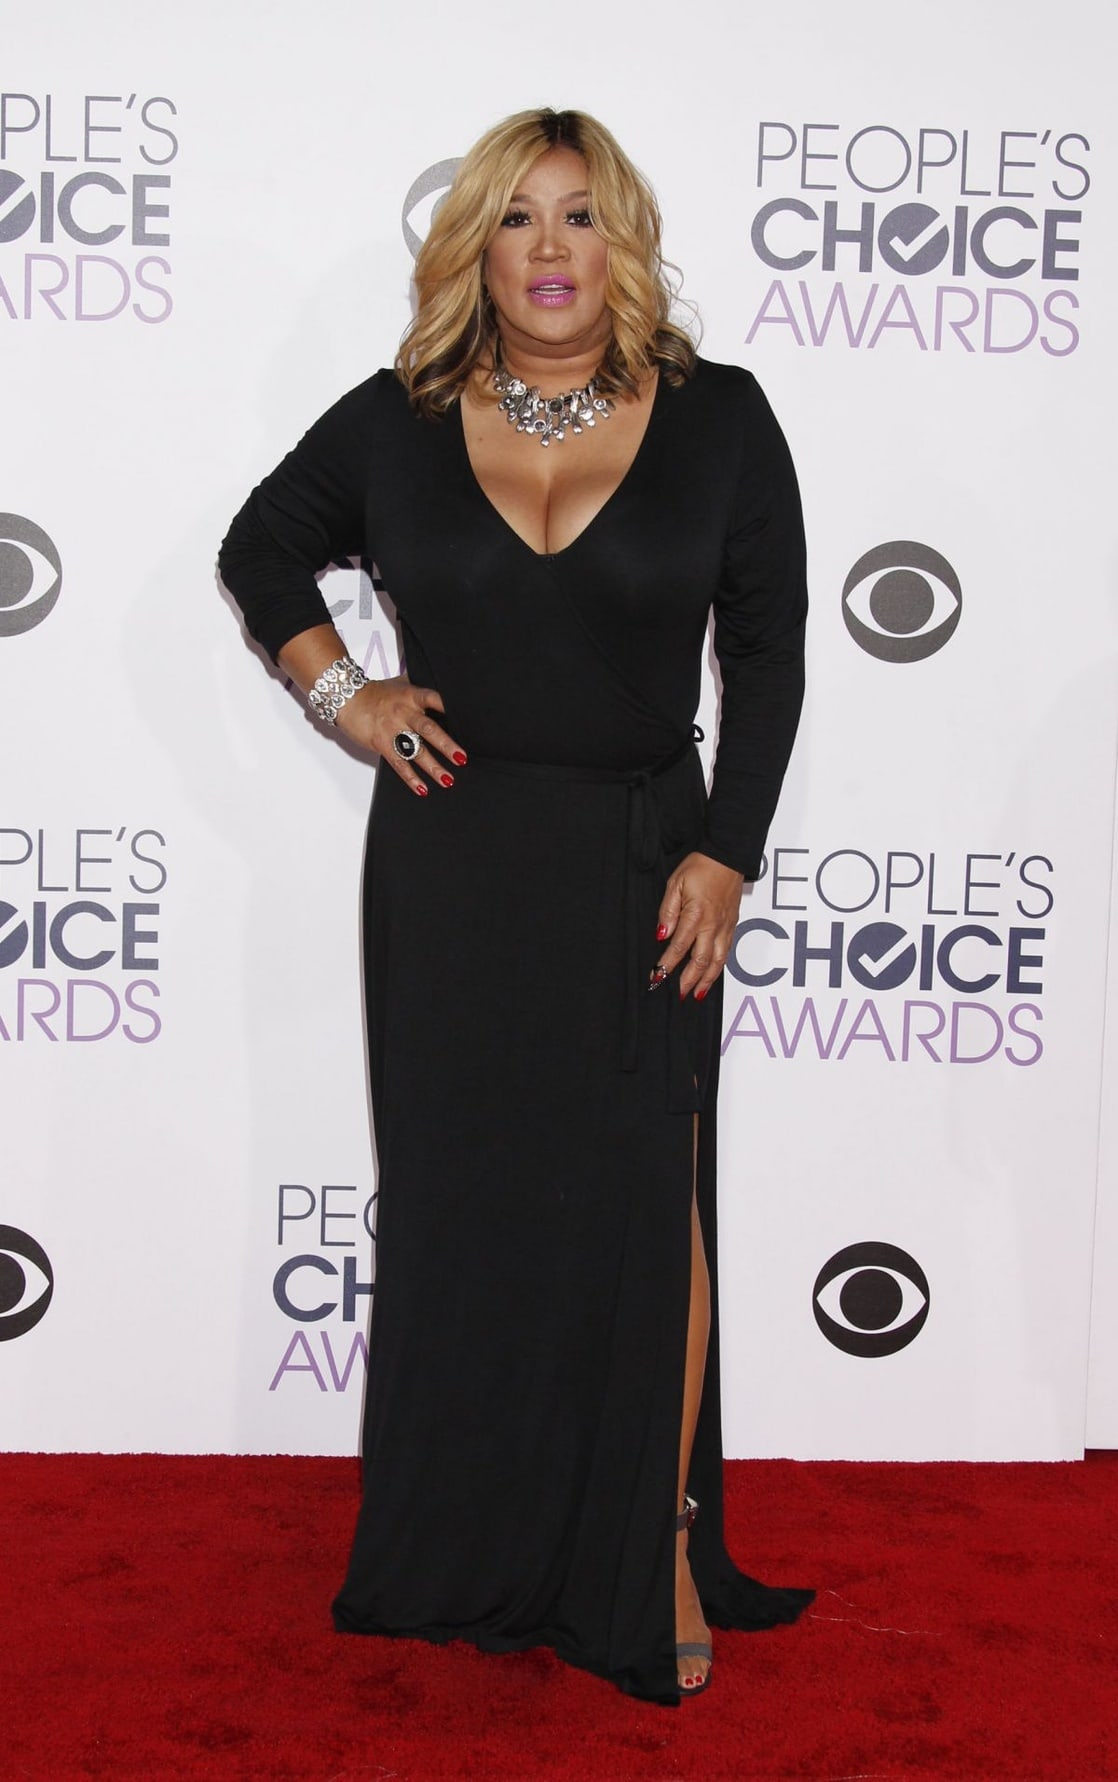 Kym Whitley nude (81 foto and video), Topless, Cleavage, Boobs, cleavage 2020